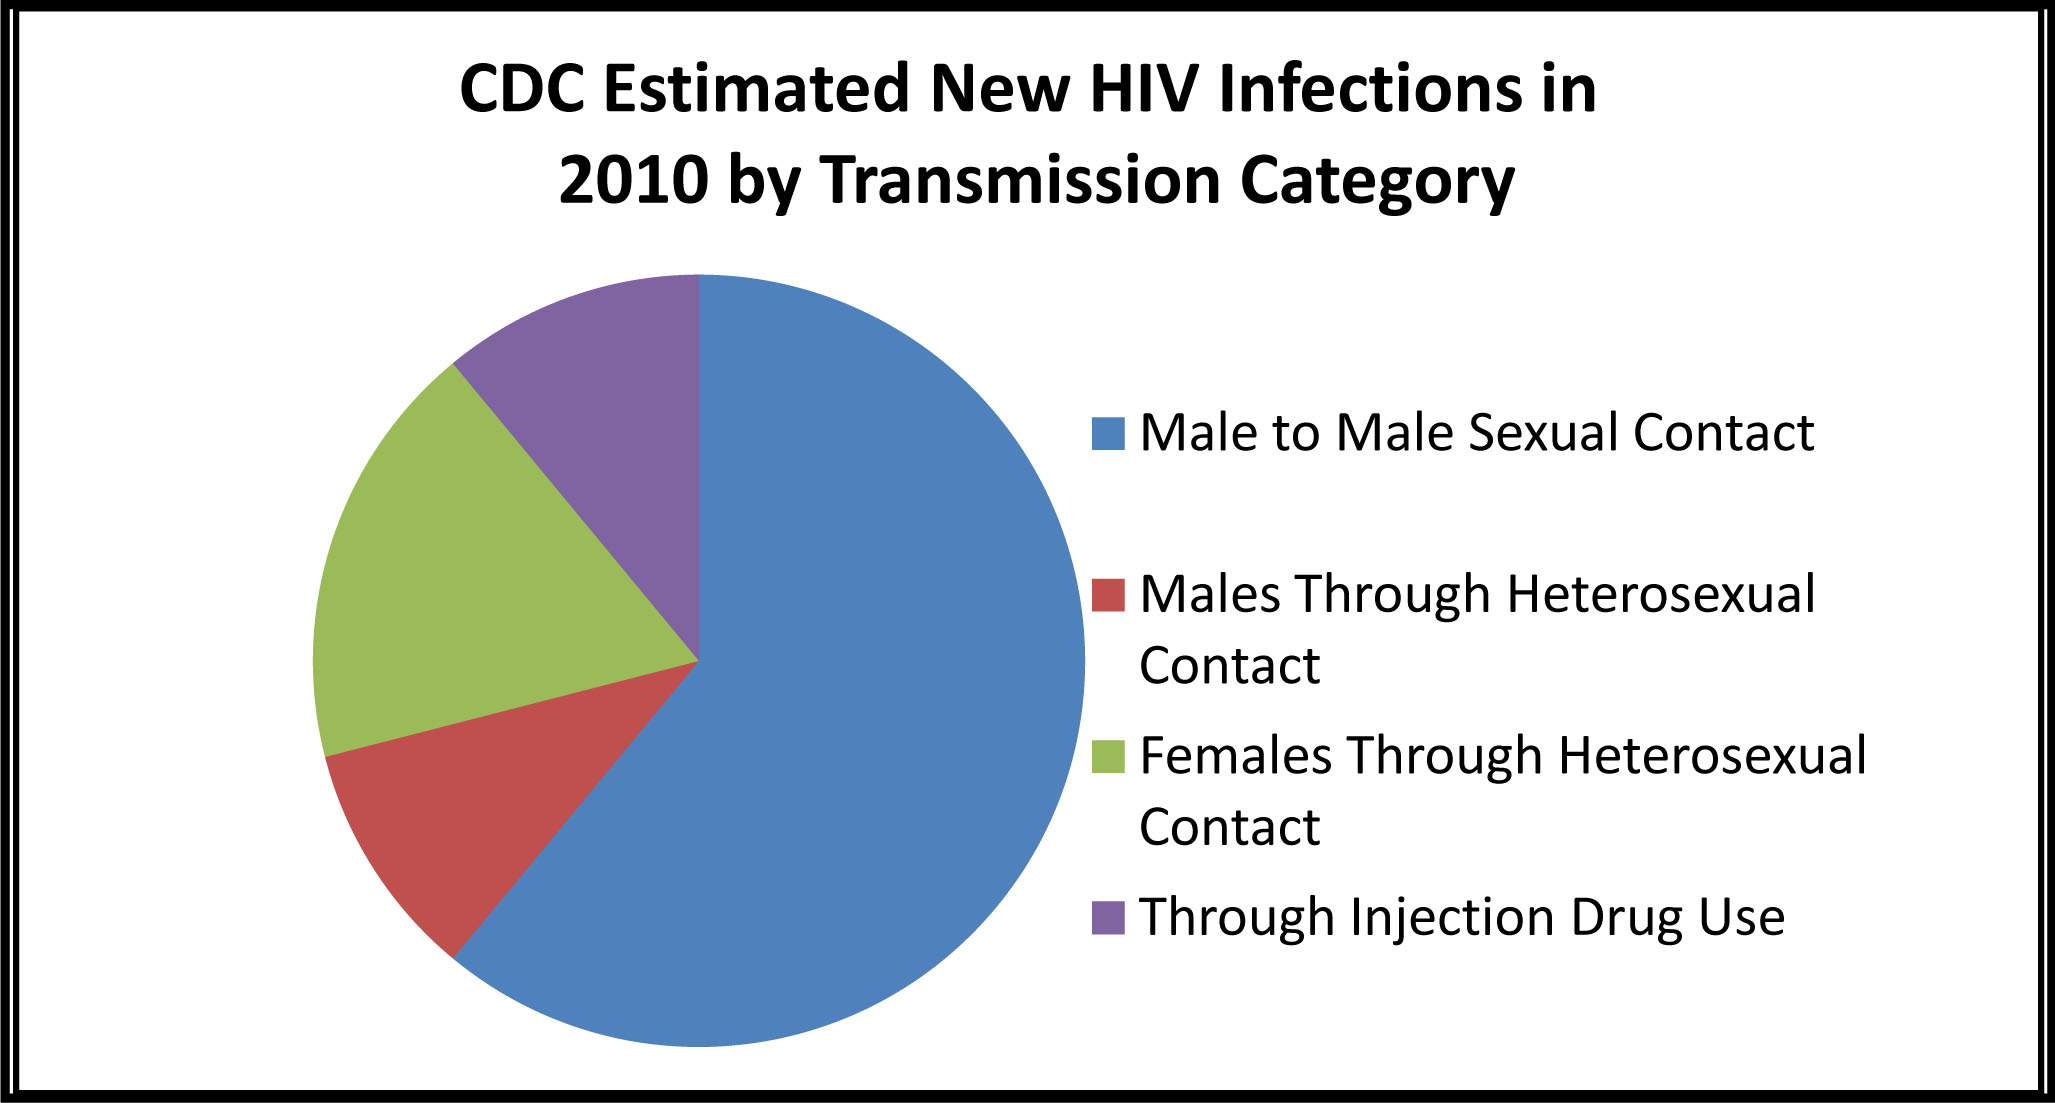 the male homosexual subculture is growing and is at times cdc estimated new hiv infections in 2010 by transmission category